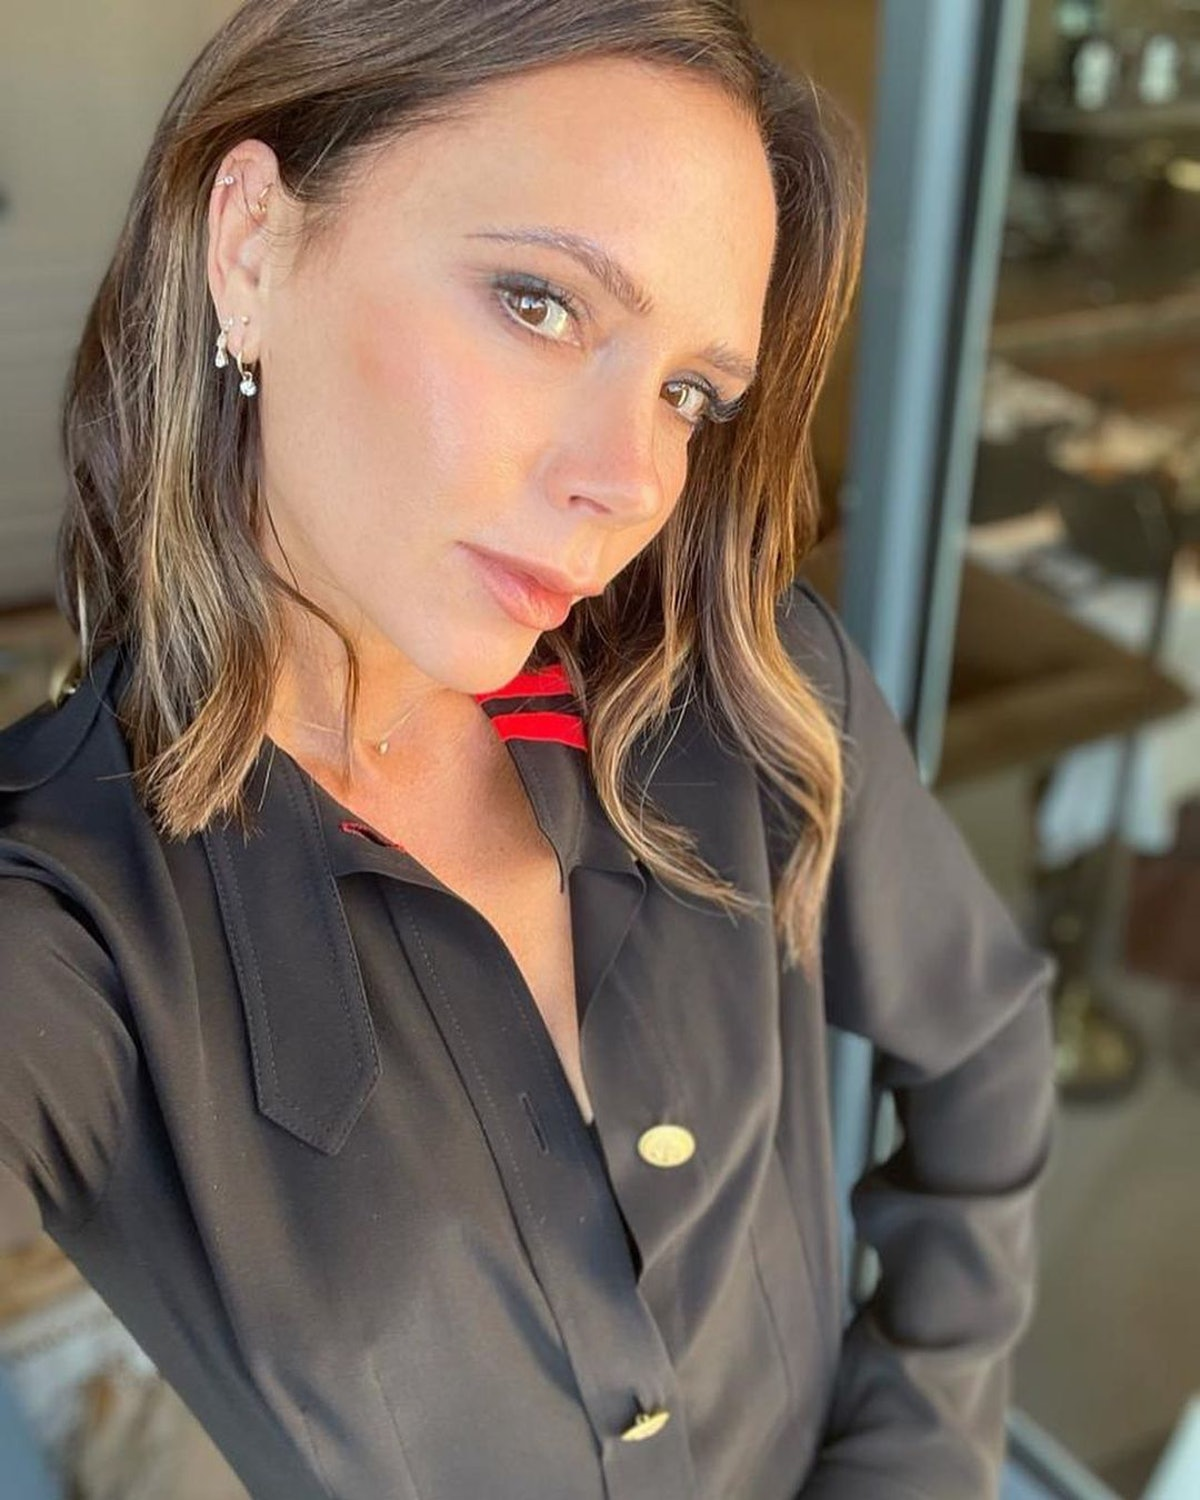 Victoria Beckham wears black military detail pleated dress from her brand, Victoria Beckham, on Inst...